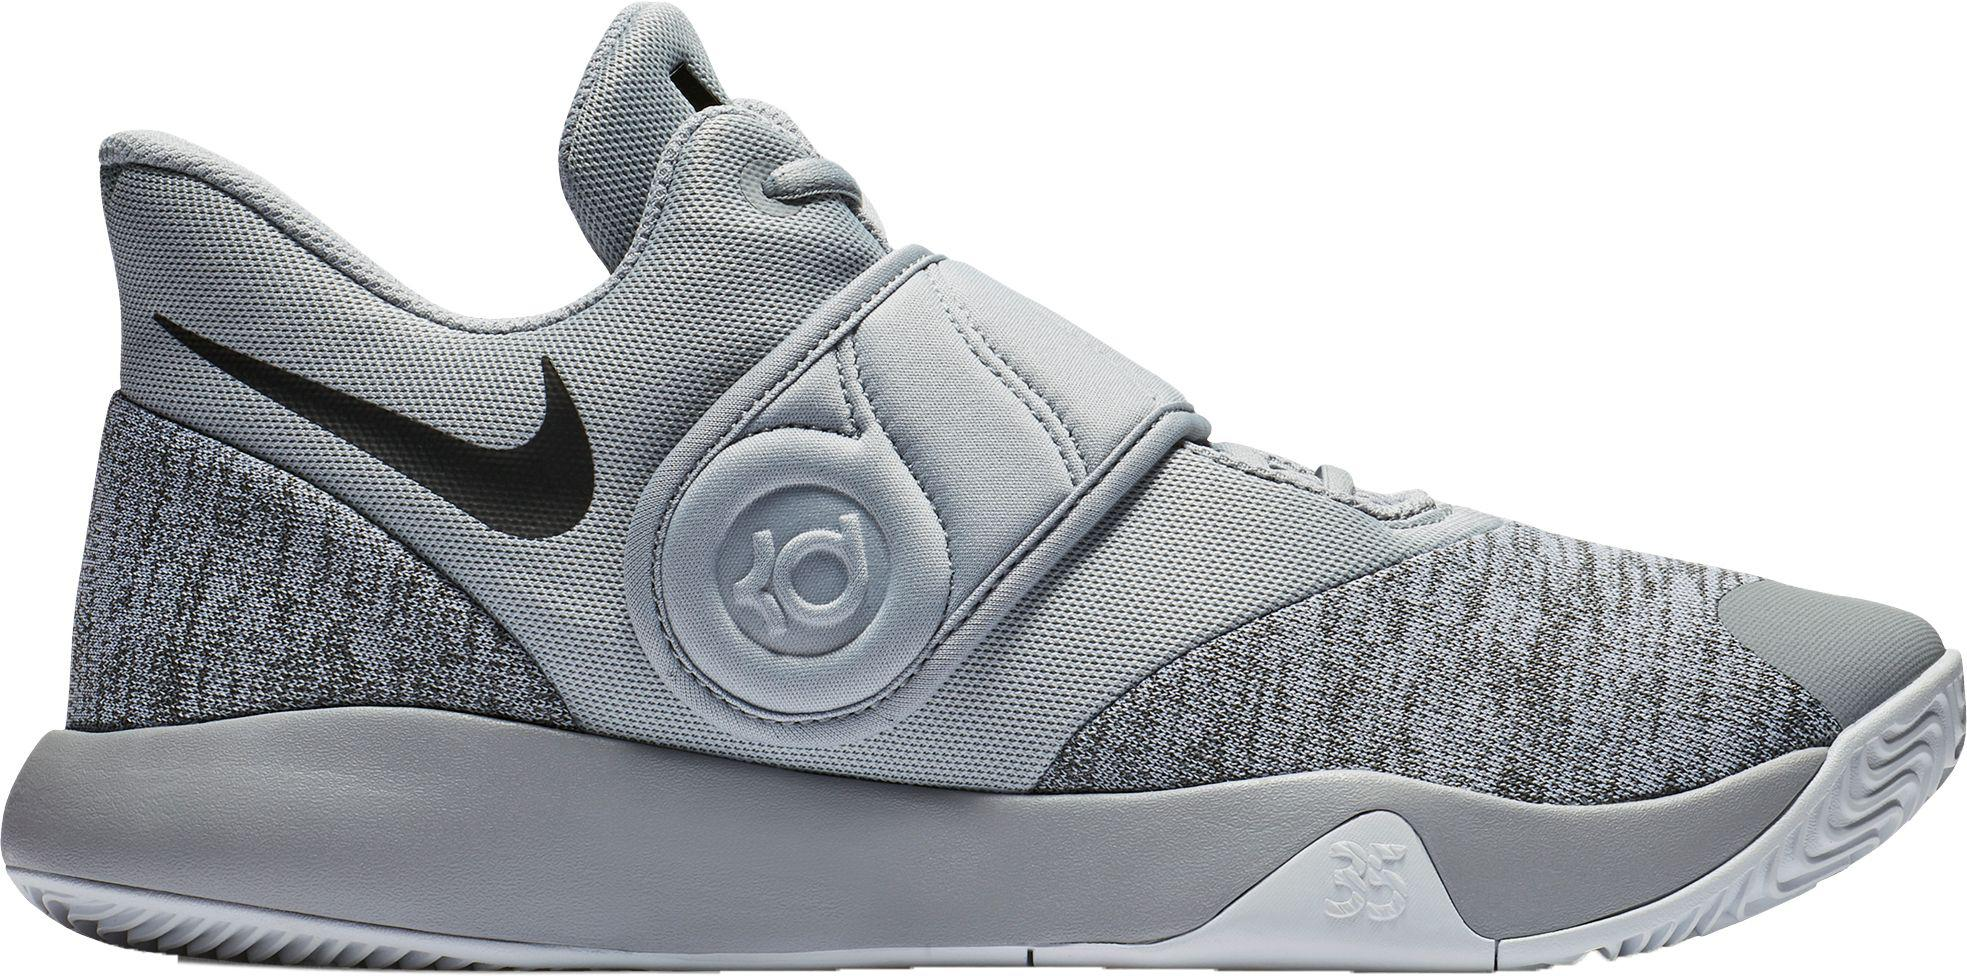 new arrival 066ca 889e2 Nike Kd Trey 5 Vi Basketball Shoes in Gray for Men - Lyst